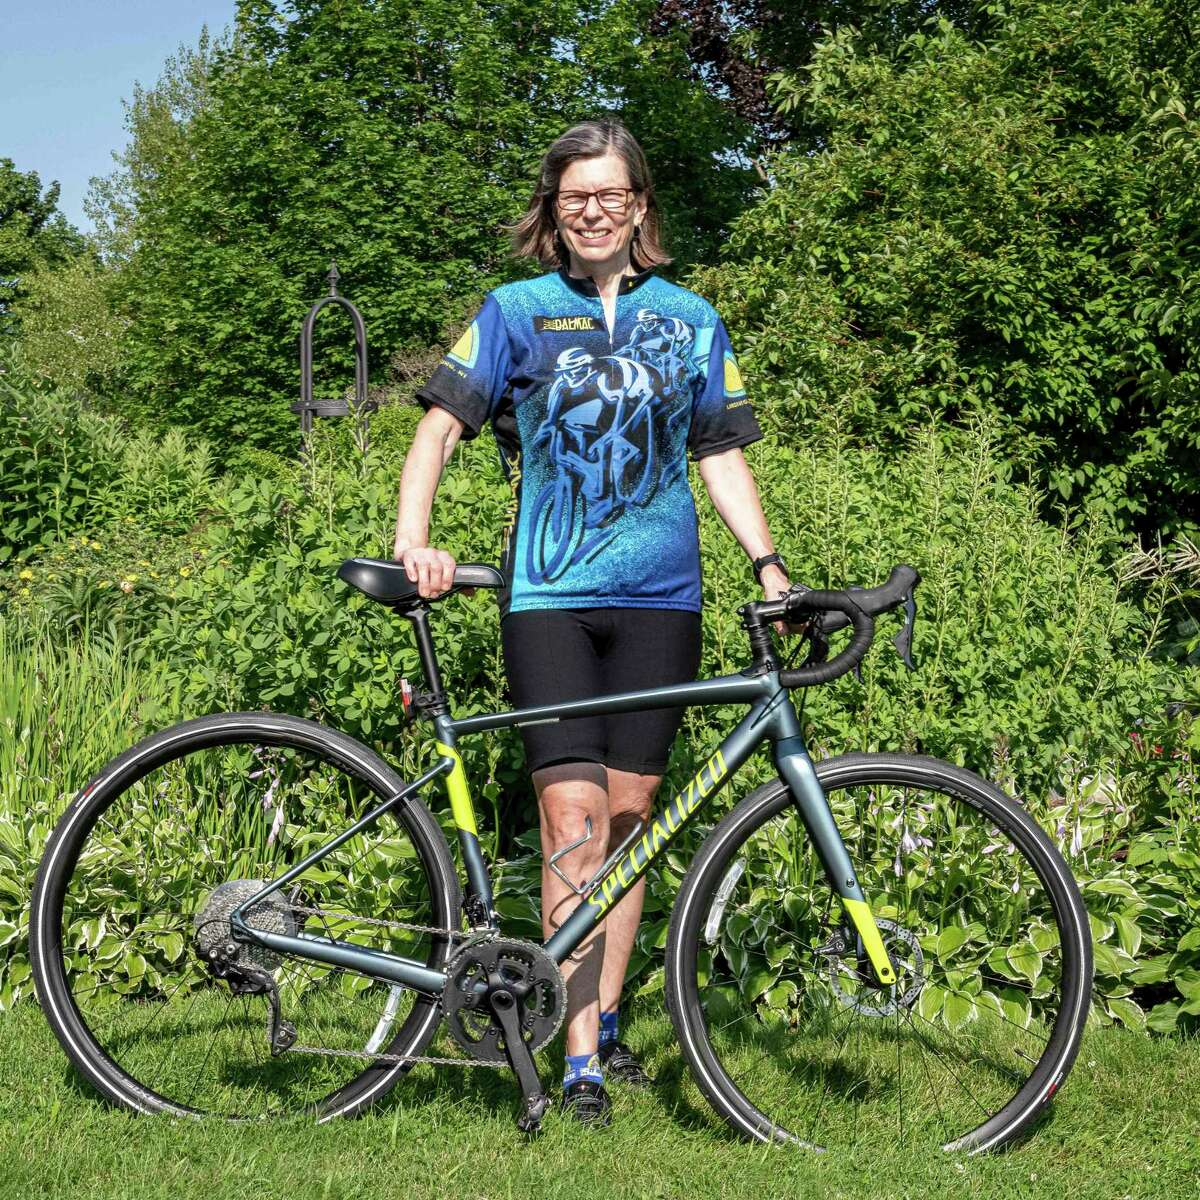 Michelle Russell will be completing the cycling leg of the Ironman 7.30 as part of the Paul Oliver Challenge Team. (Courtesy Photo)